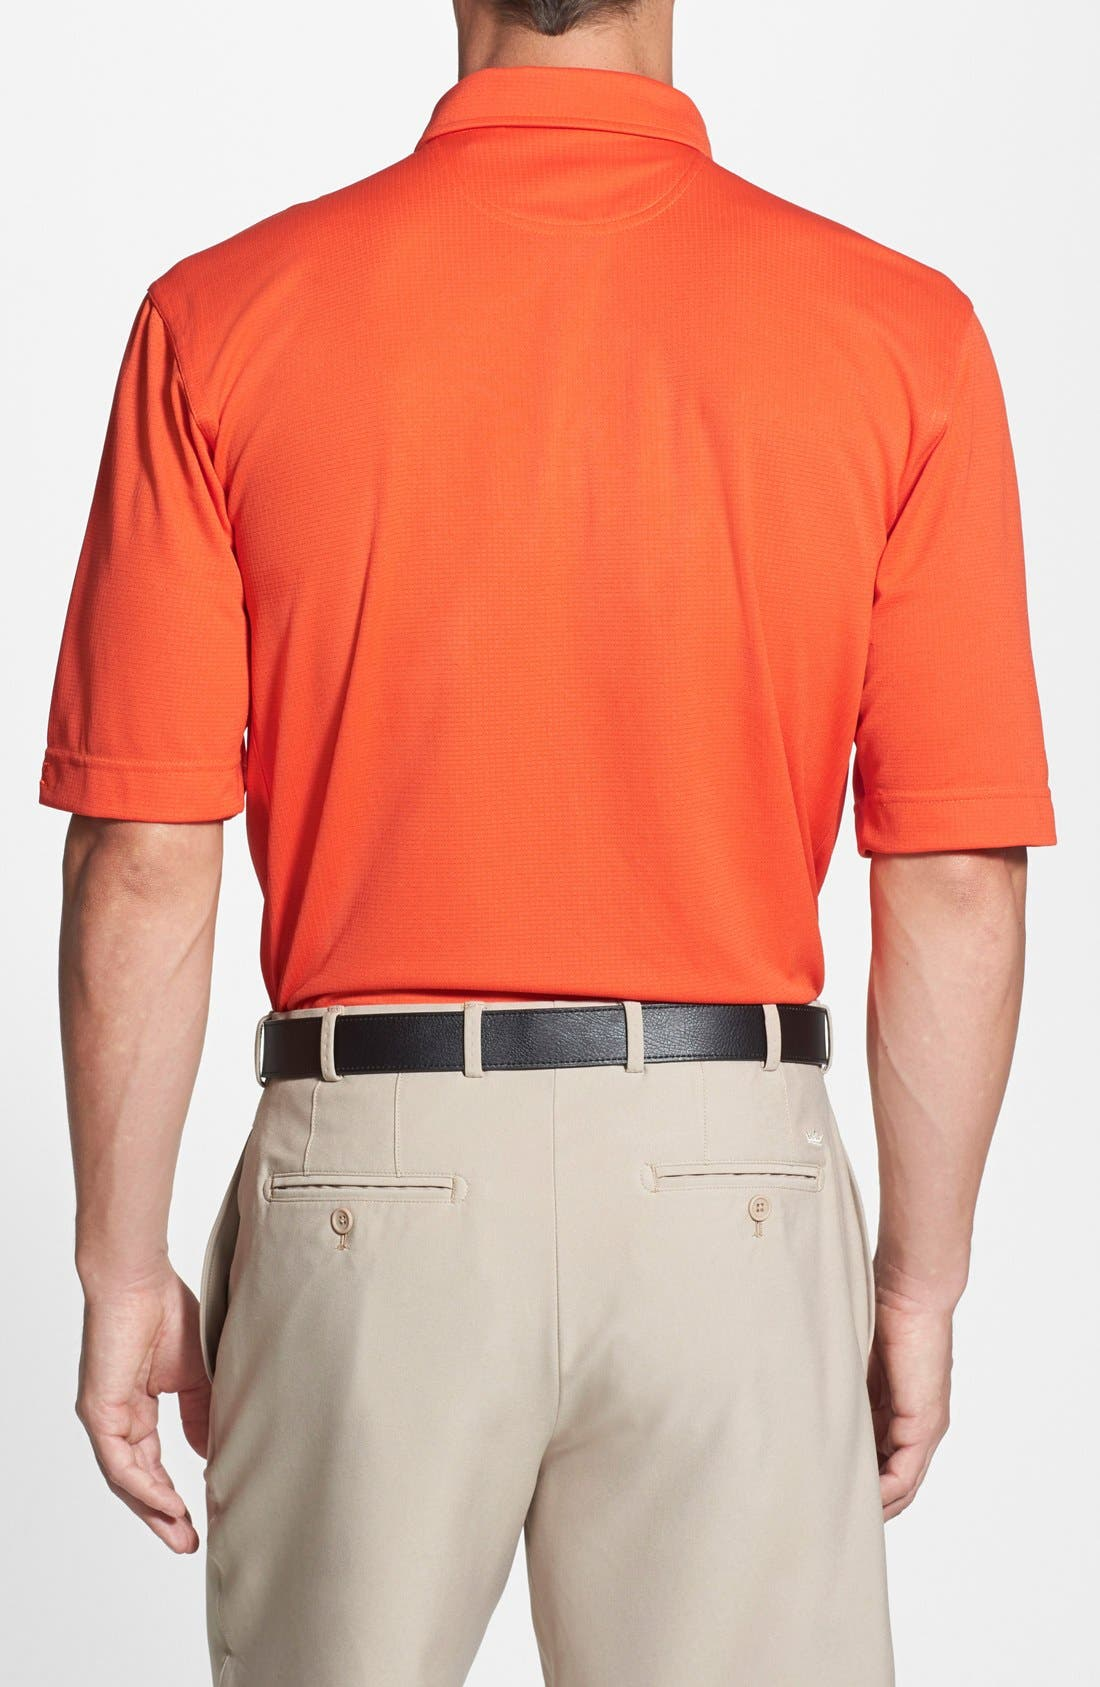 Alternate Image 2  - Cutter & Buck Cleveland Browns - Genre DryTec Moisture Wicking Polo